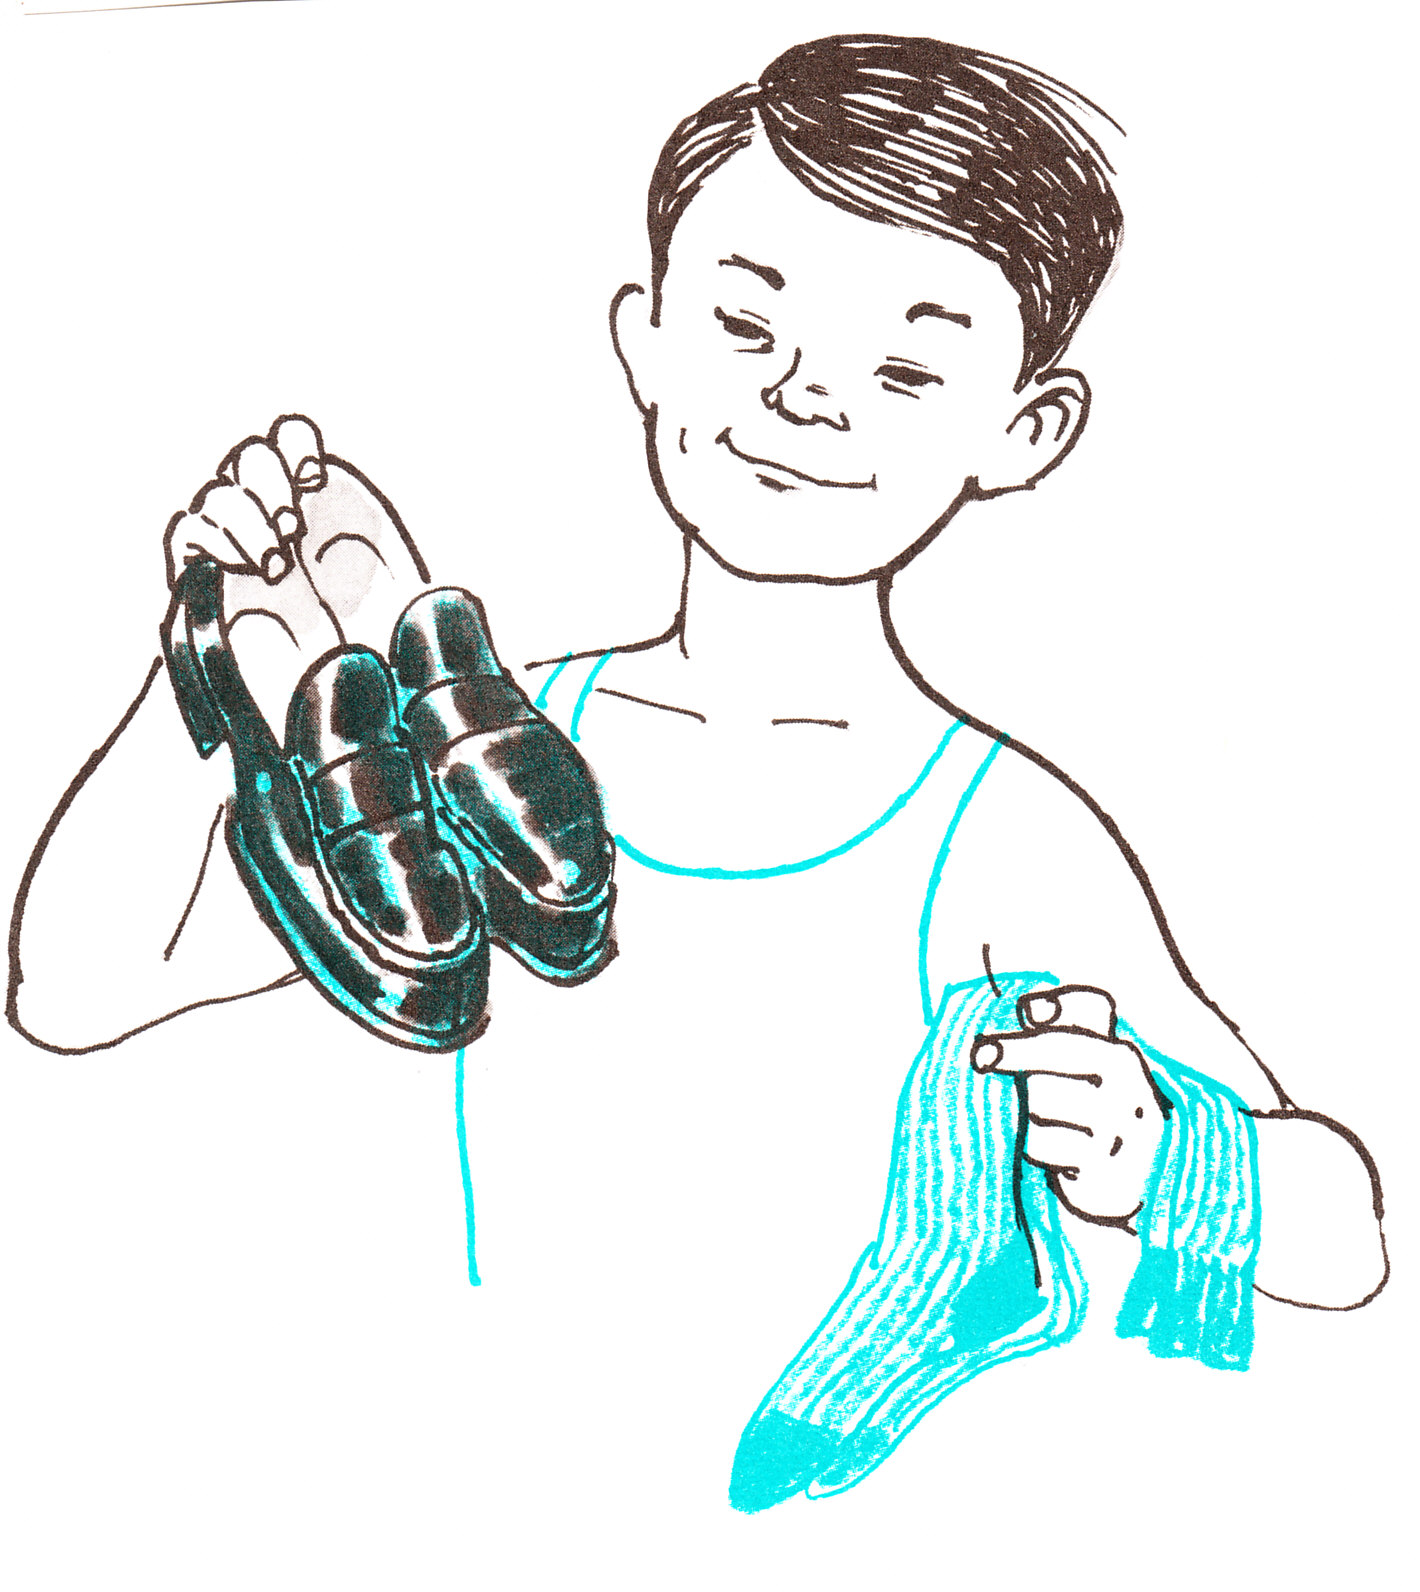 Put on socks and shoes kids clipart transparent Free Socks Shoes Cliparts, Download Free Clip Art, Free Clip ... transparent